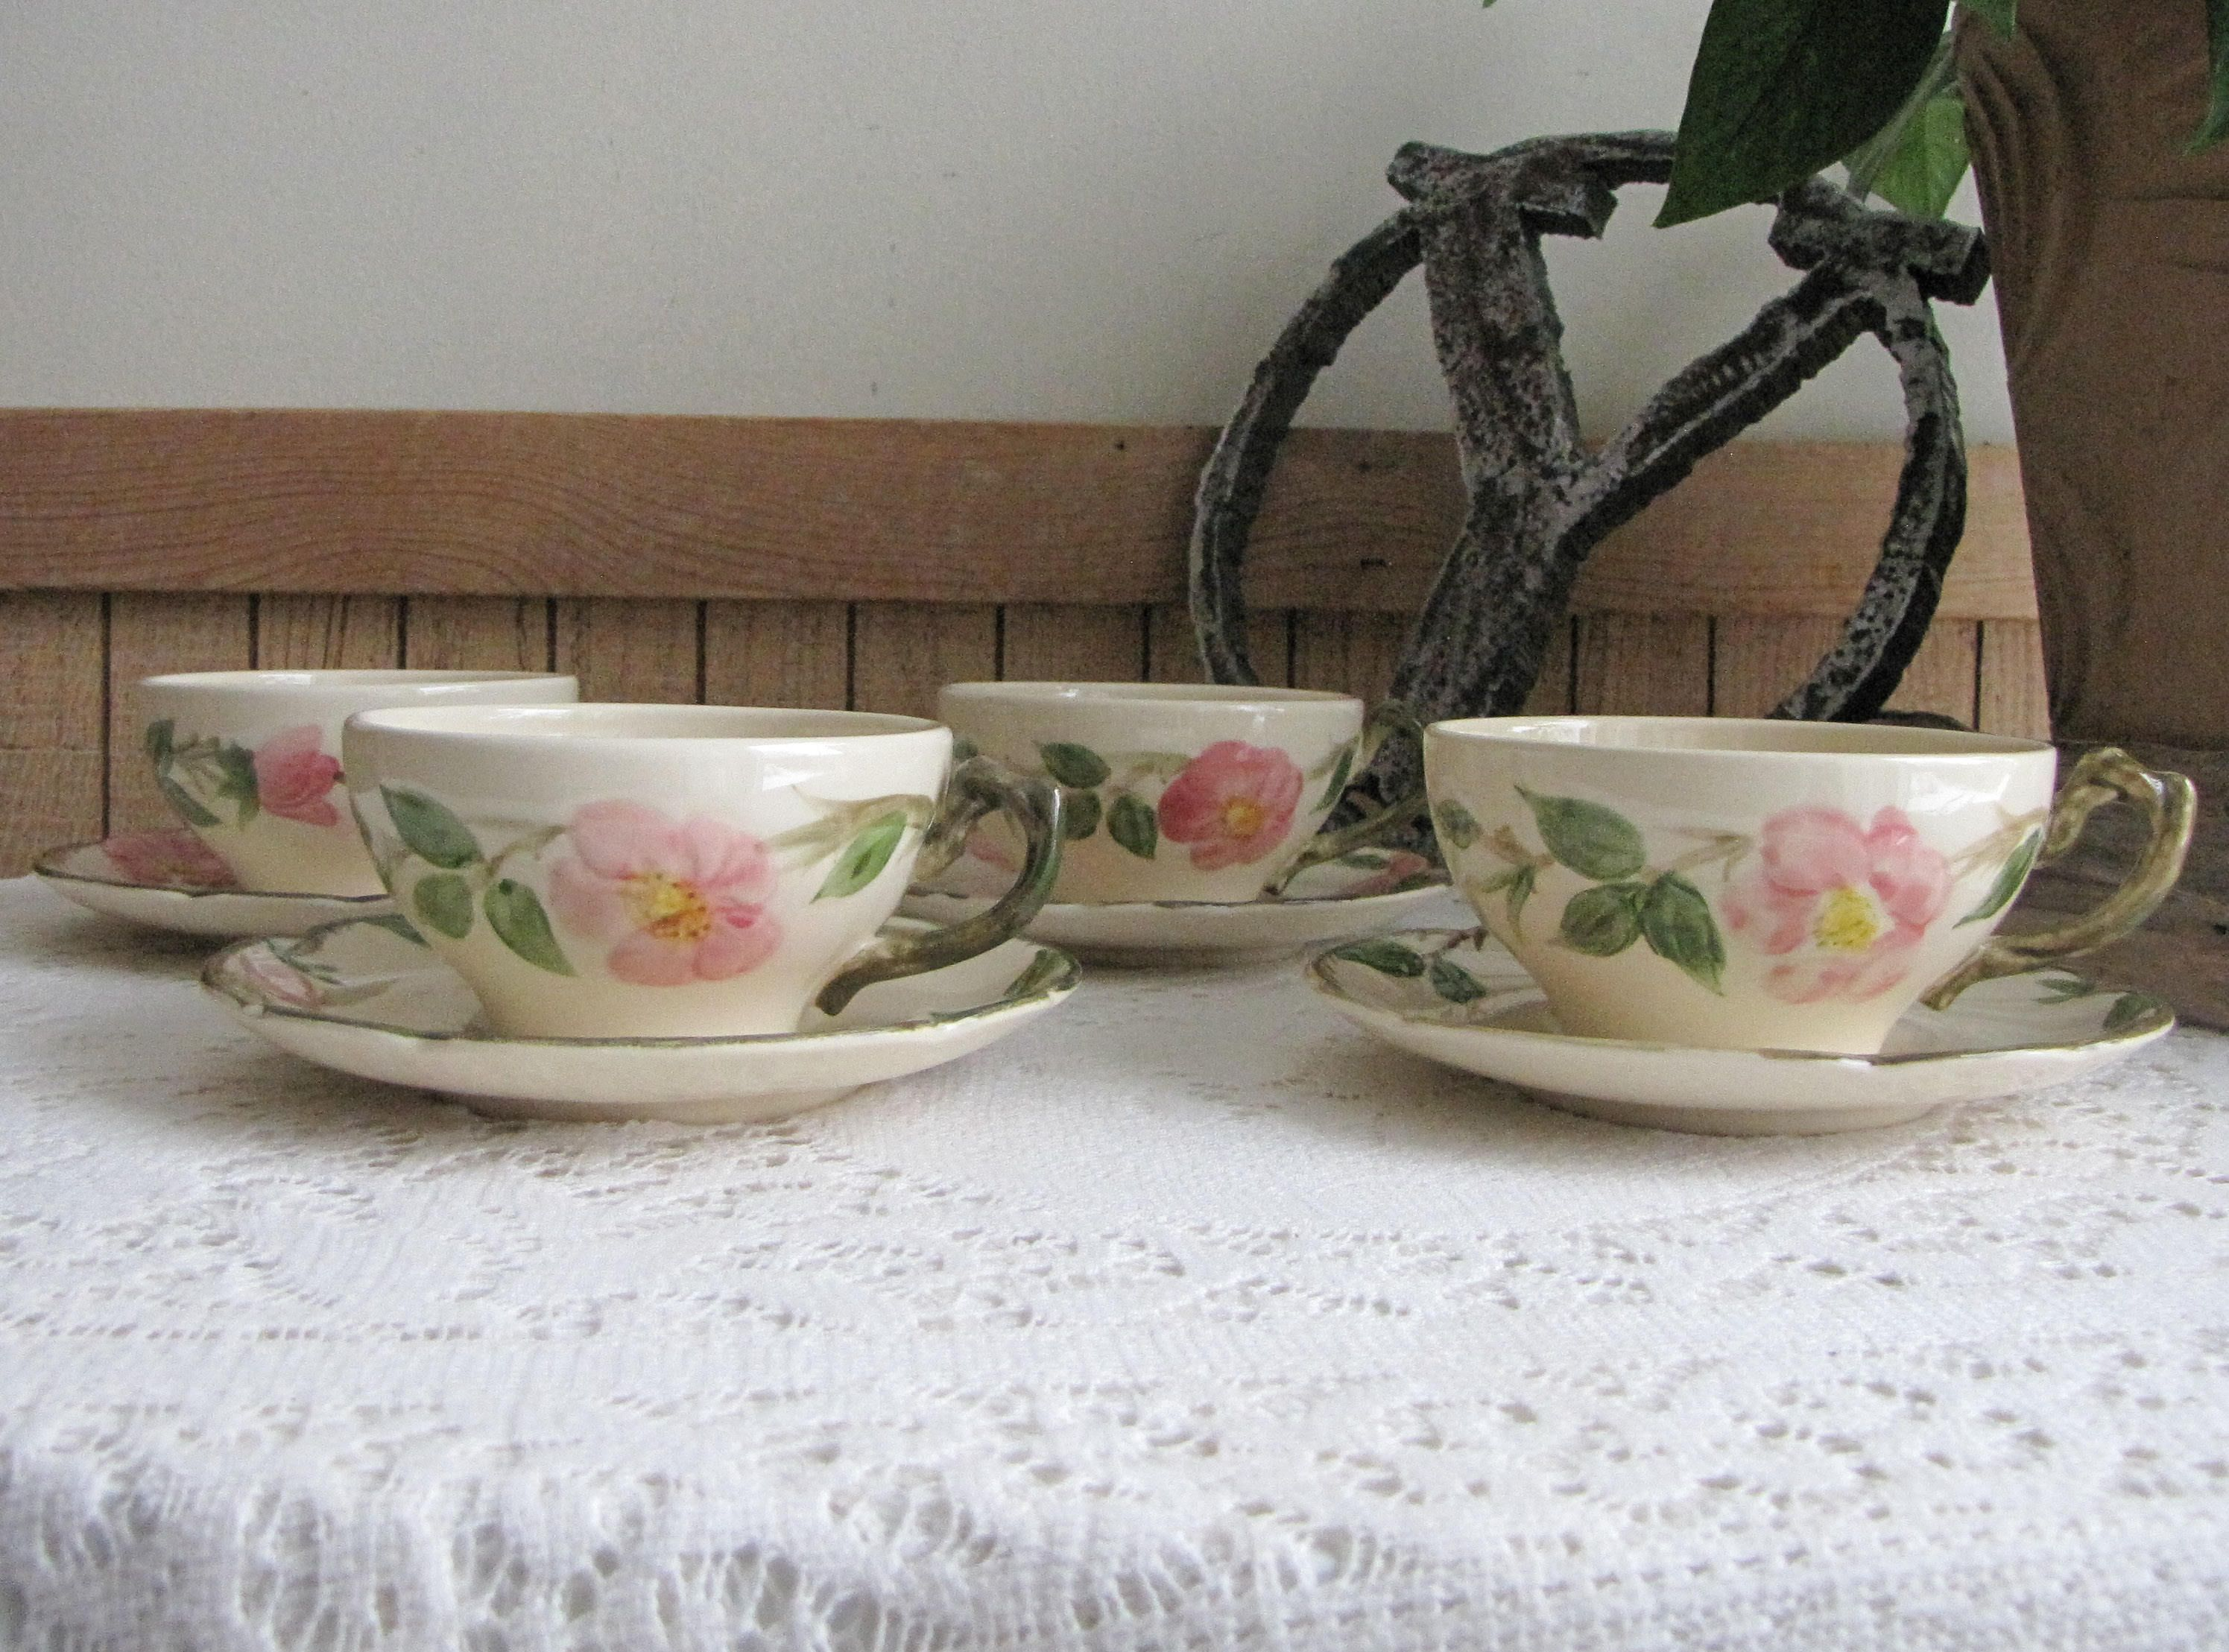 Franciscan Desert Rose Cups and Saucers Vintage Dinnerware and Replacements Set of Four (4) & Franciscan Desert Rose Cups and Saucers Vintage Dinnerware and ...